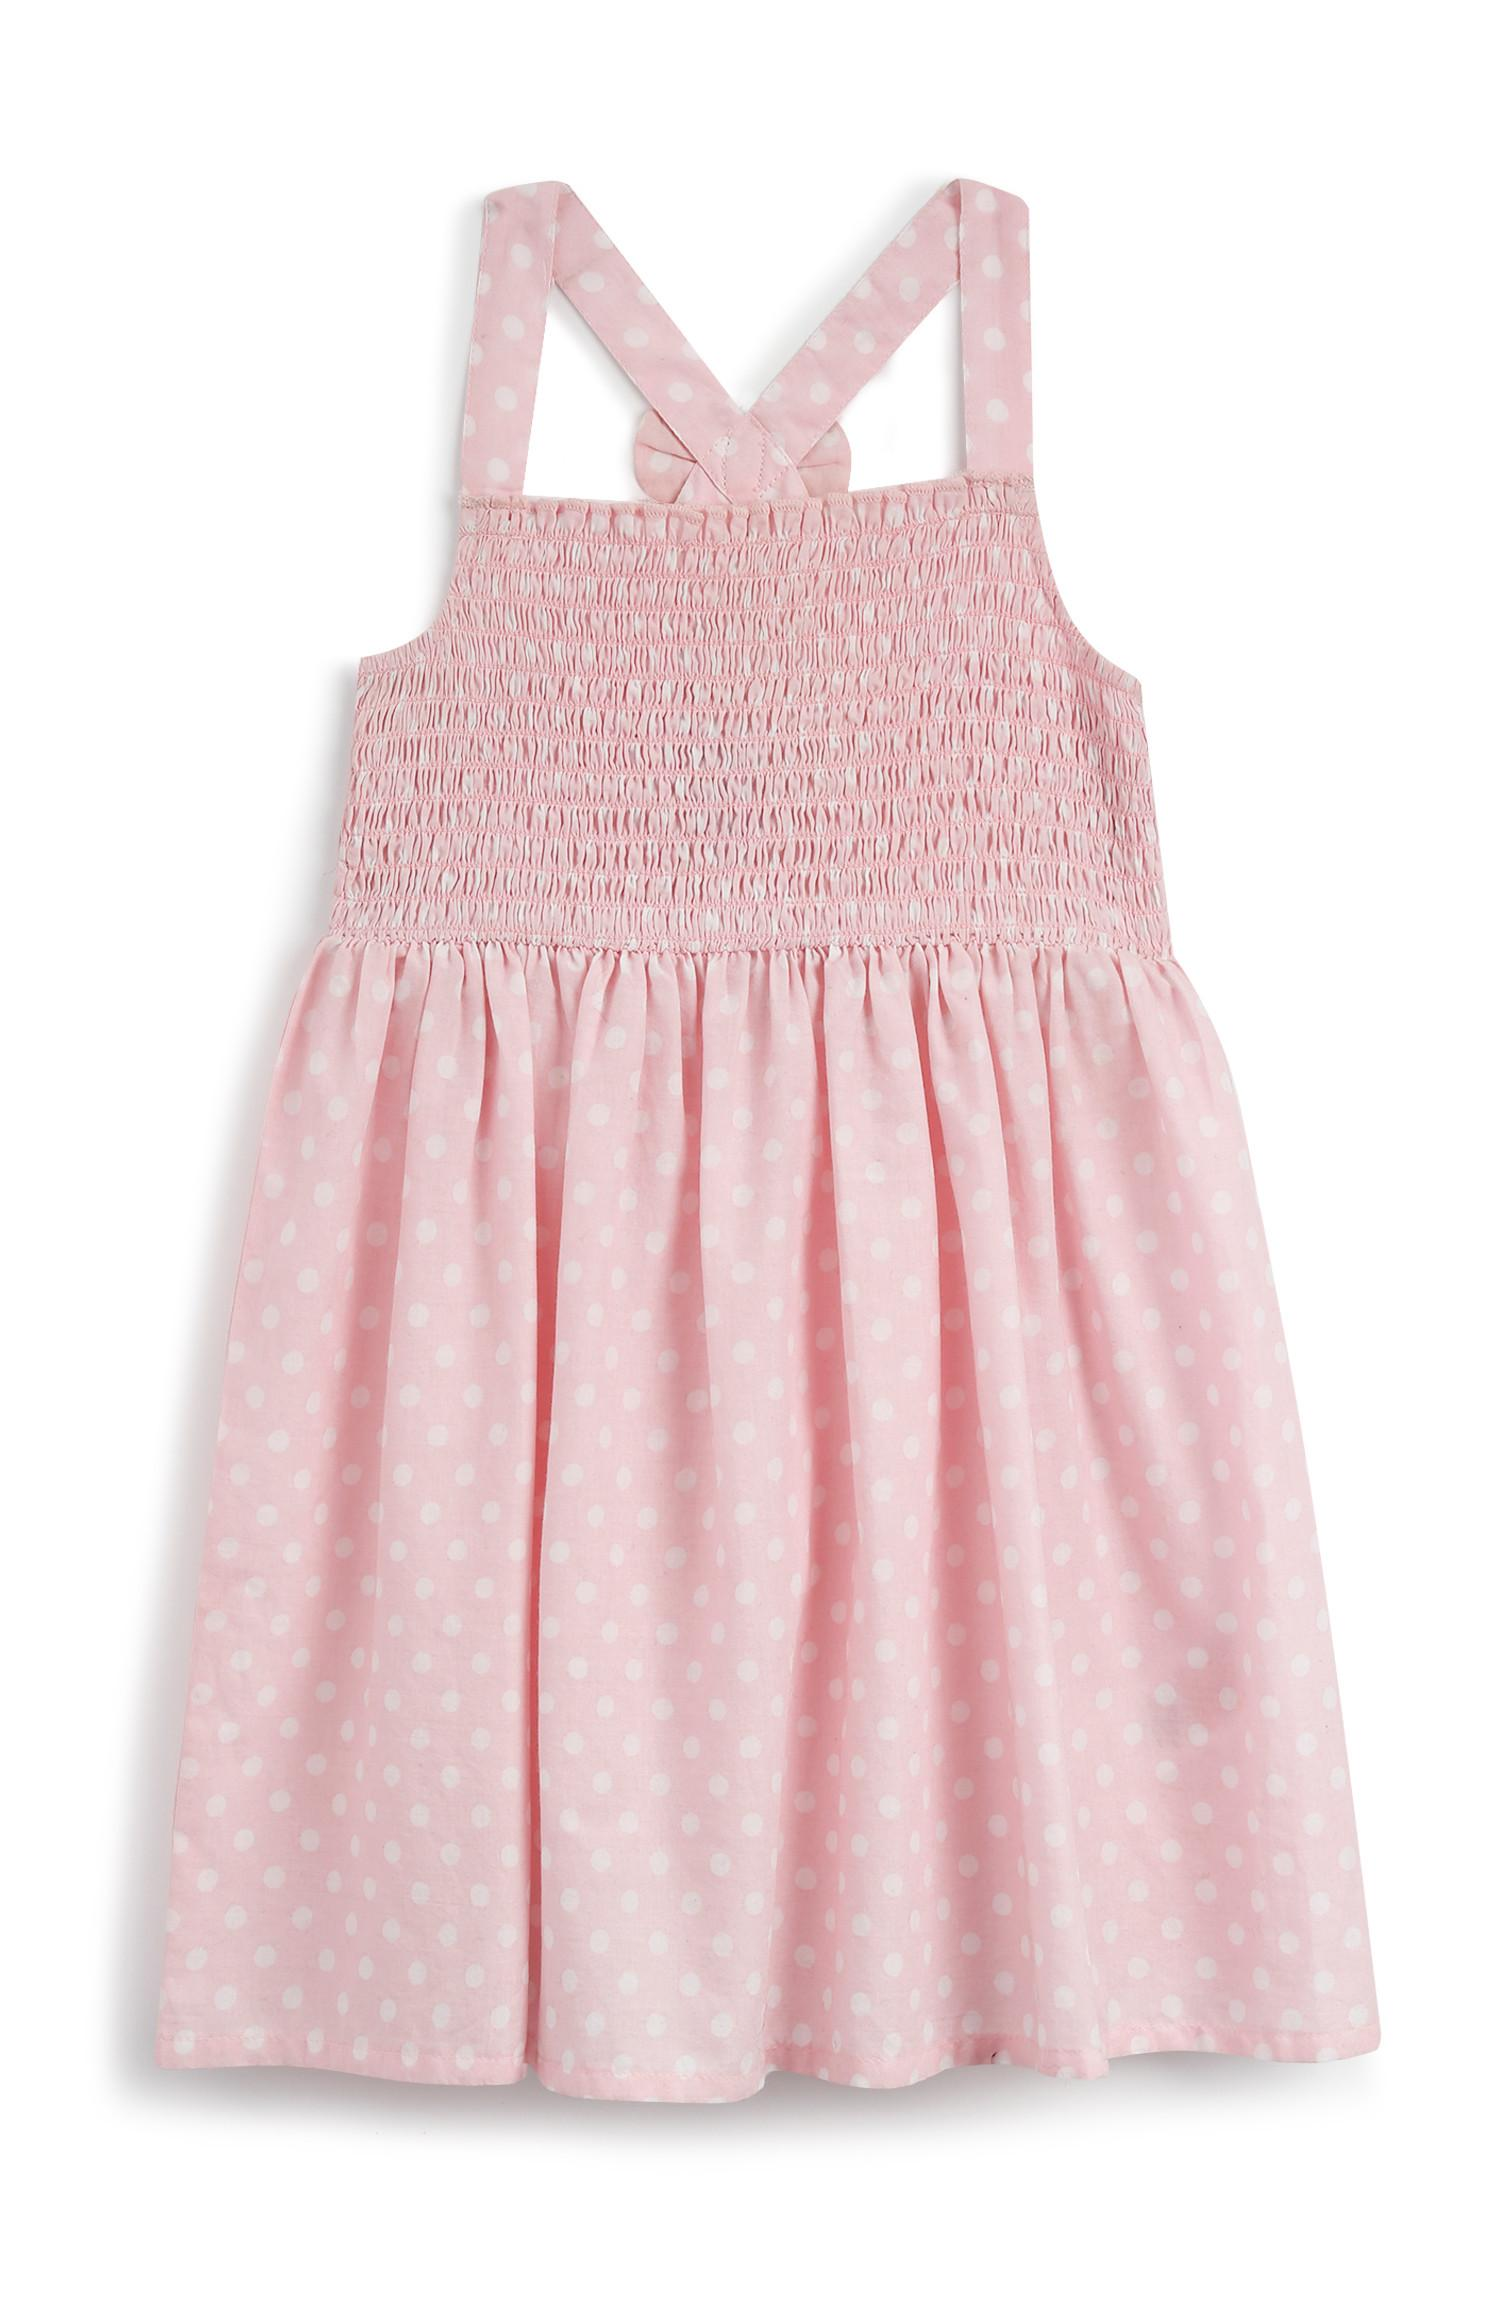 Baby Girl Polka Dot Blush Dress